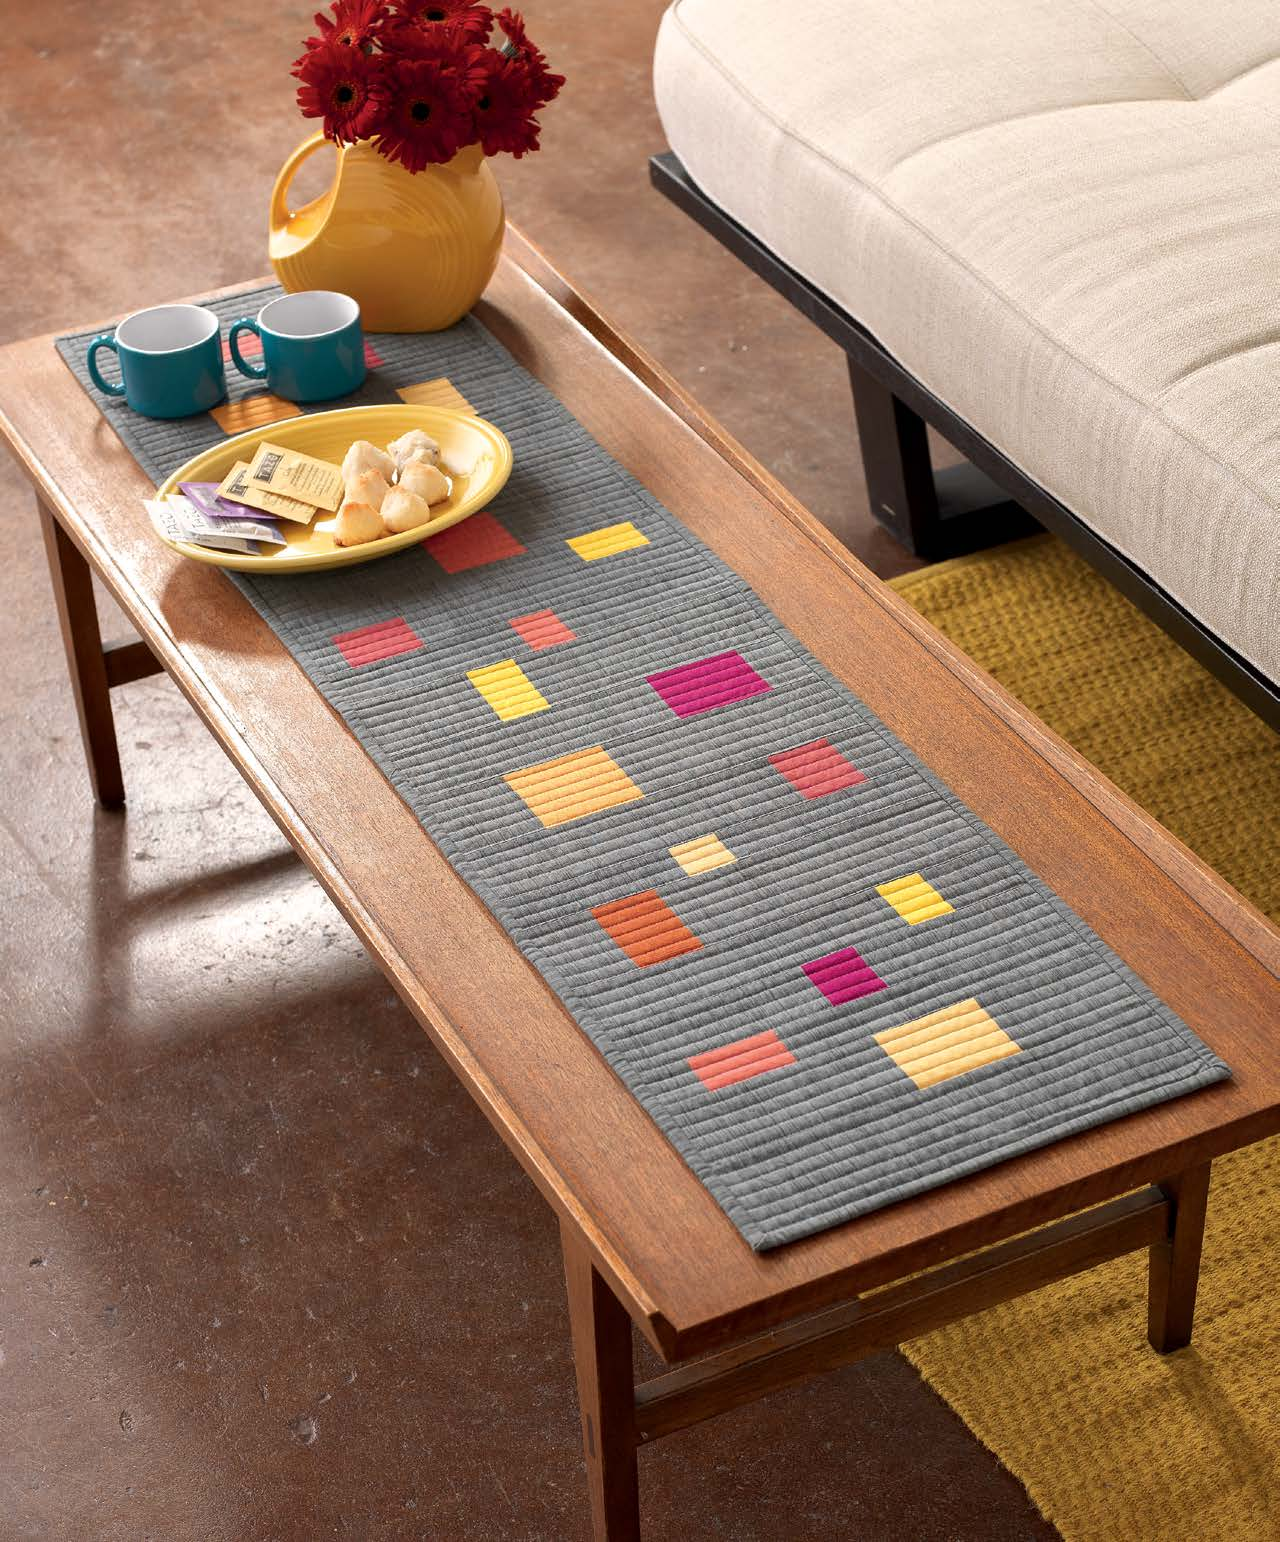 Teaginny Designs Scattered Colors Table Runner